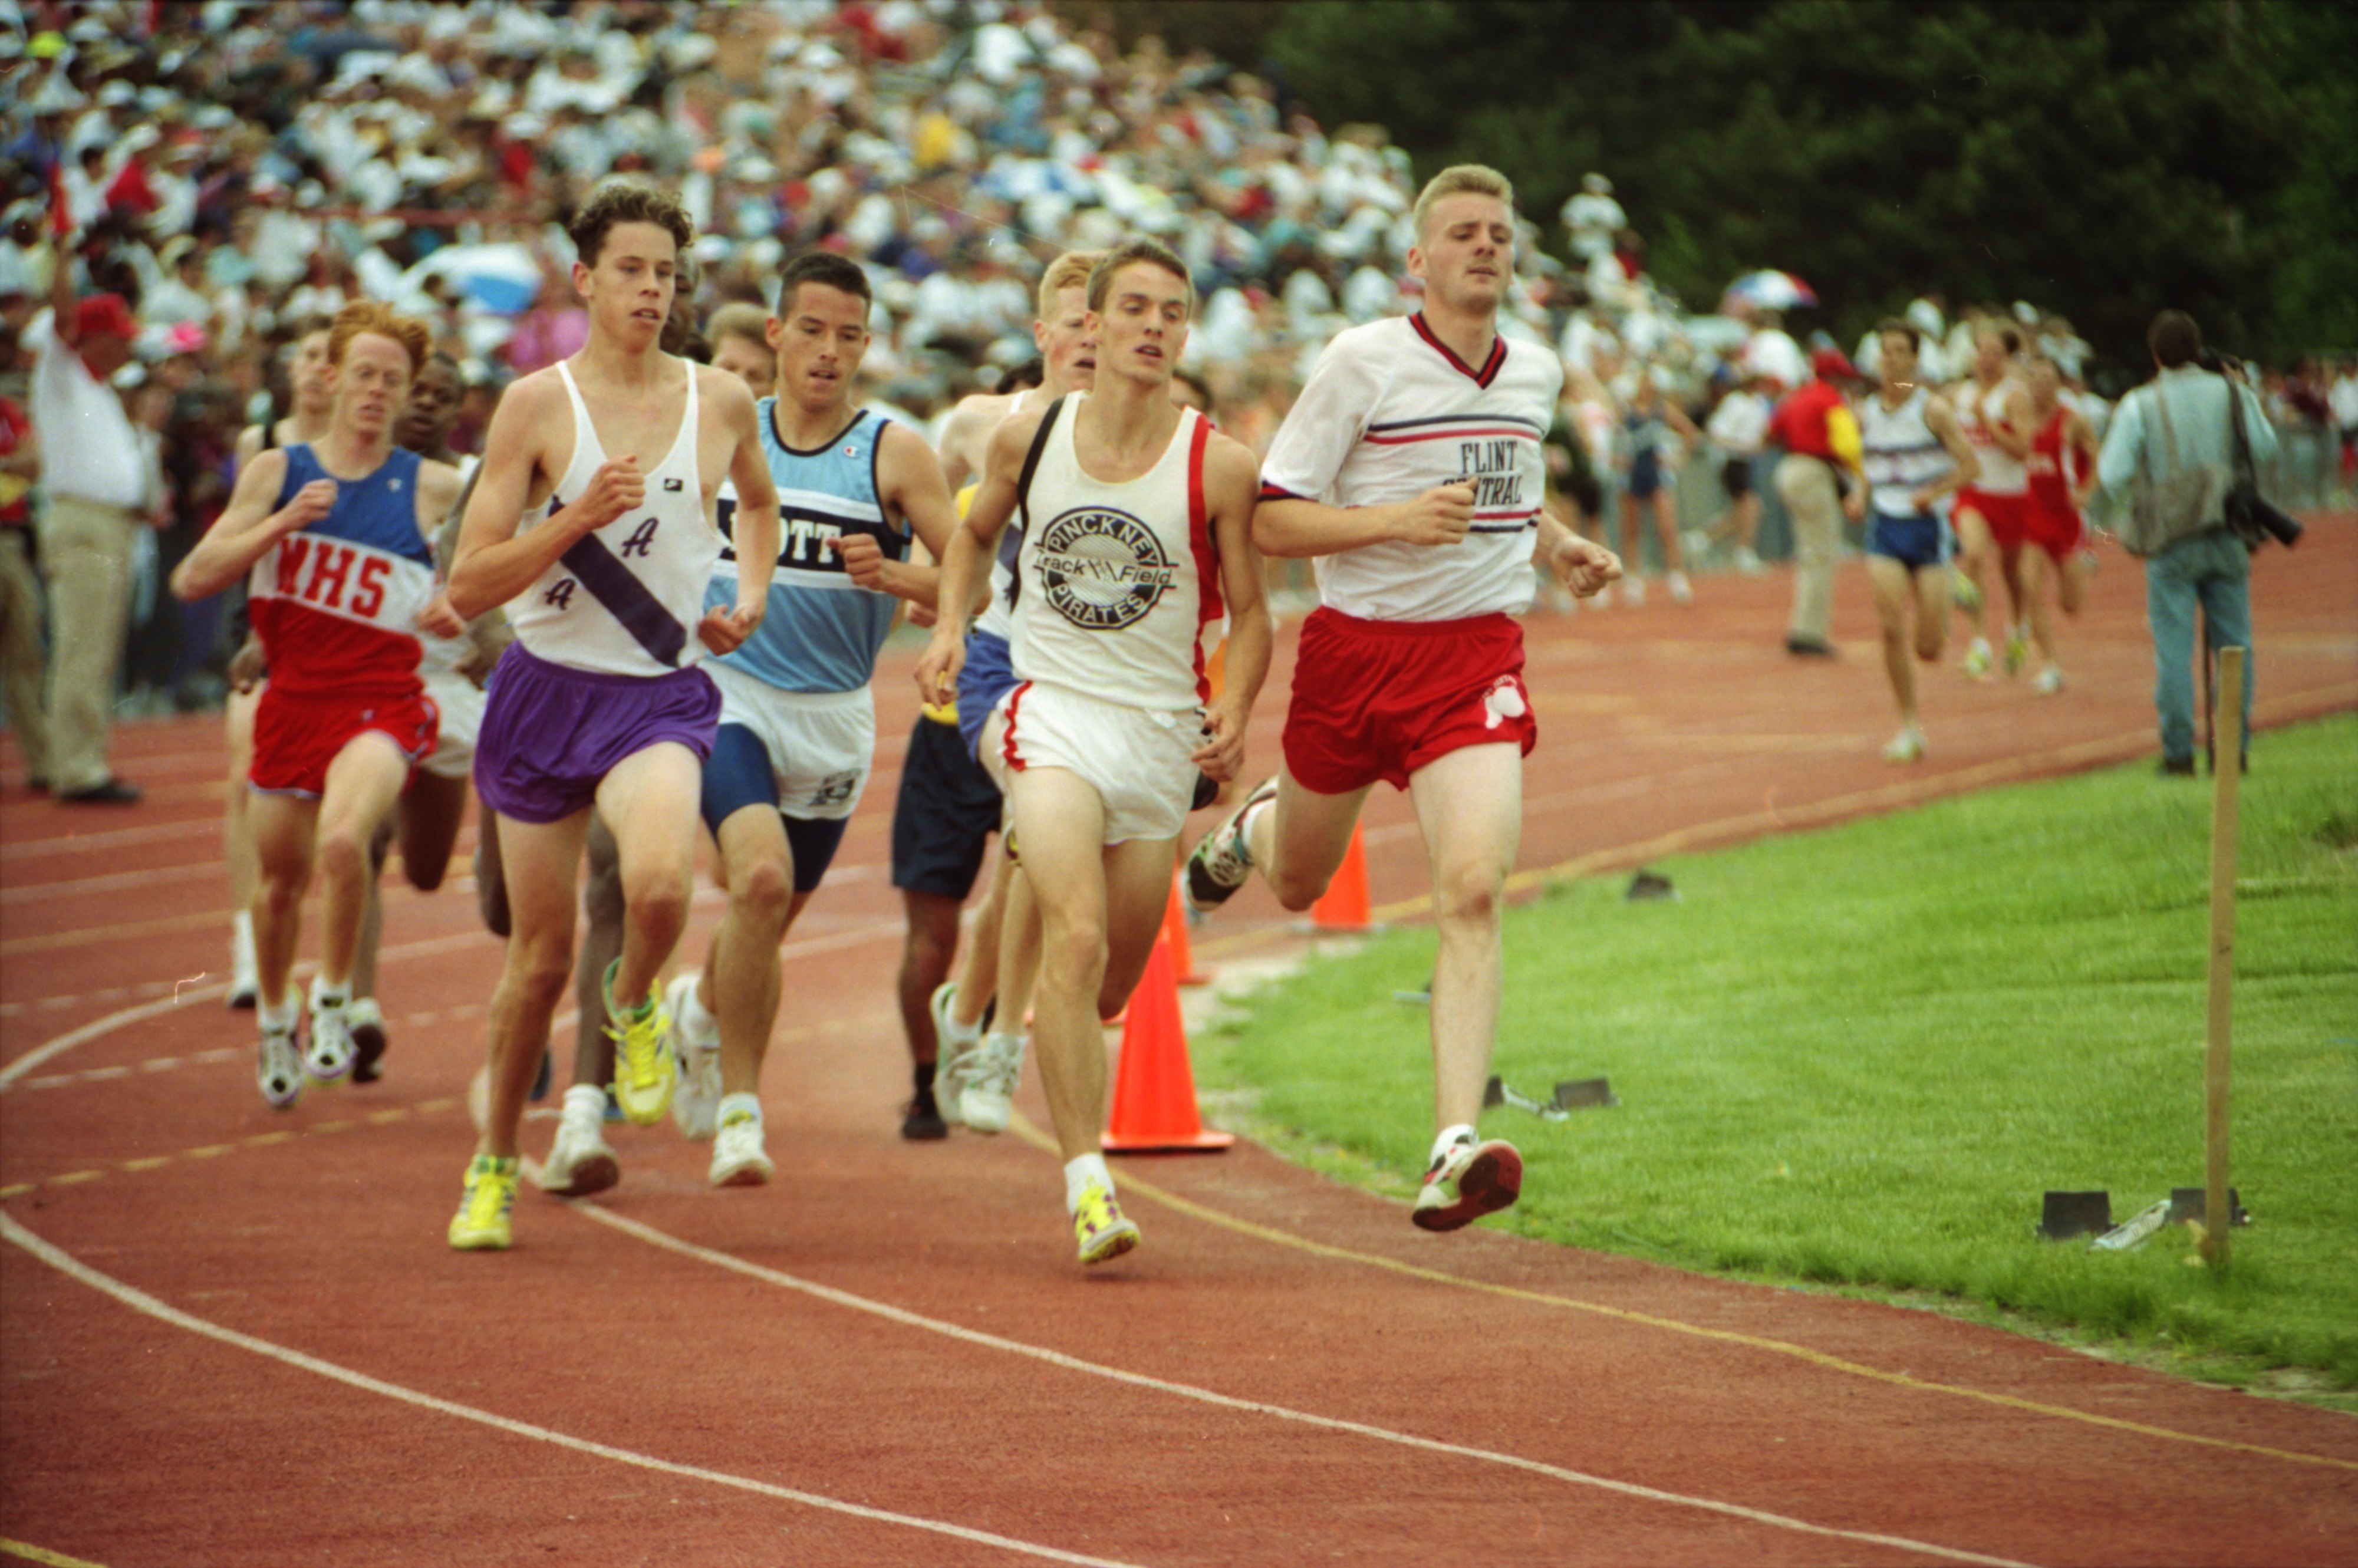 Frontrunners in Boys' State Track Meet, June 1994 image